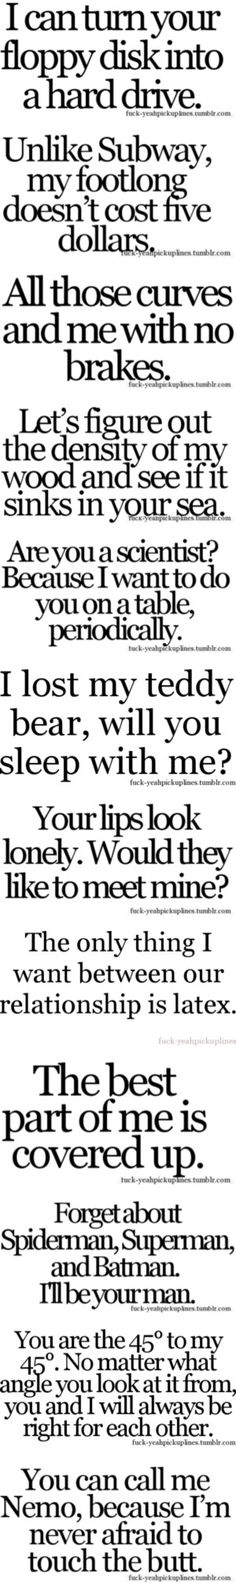 funny pick up lines for guys dirty